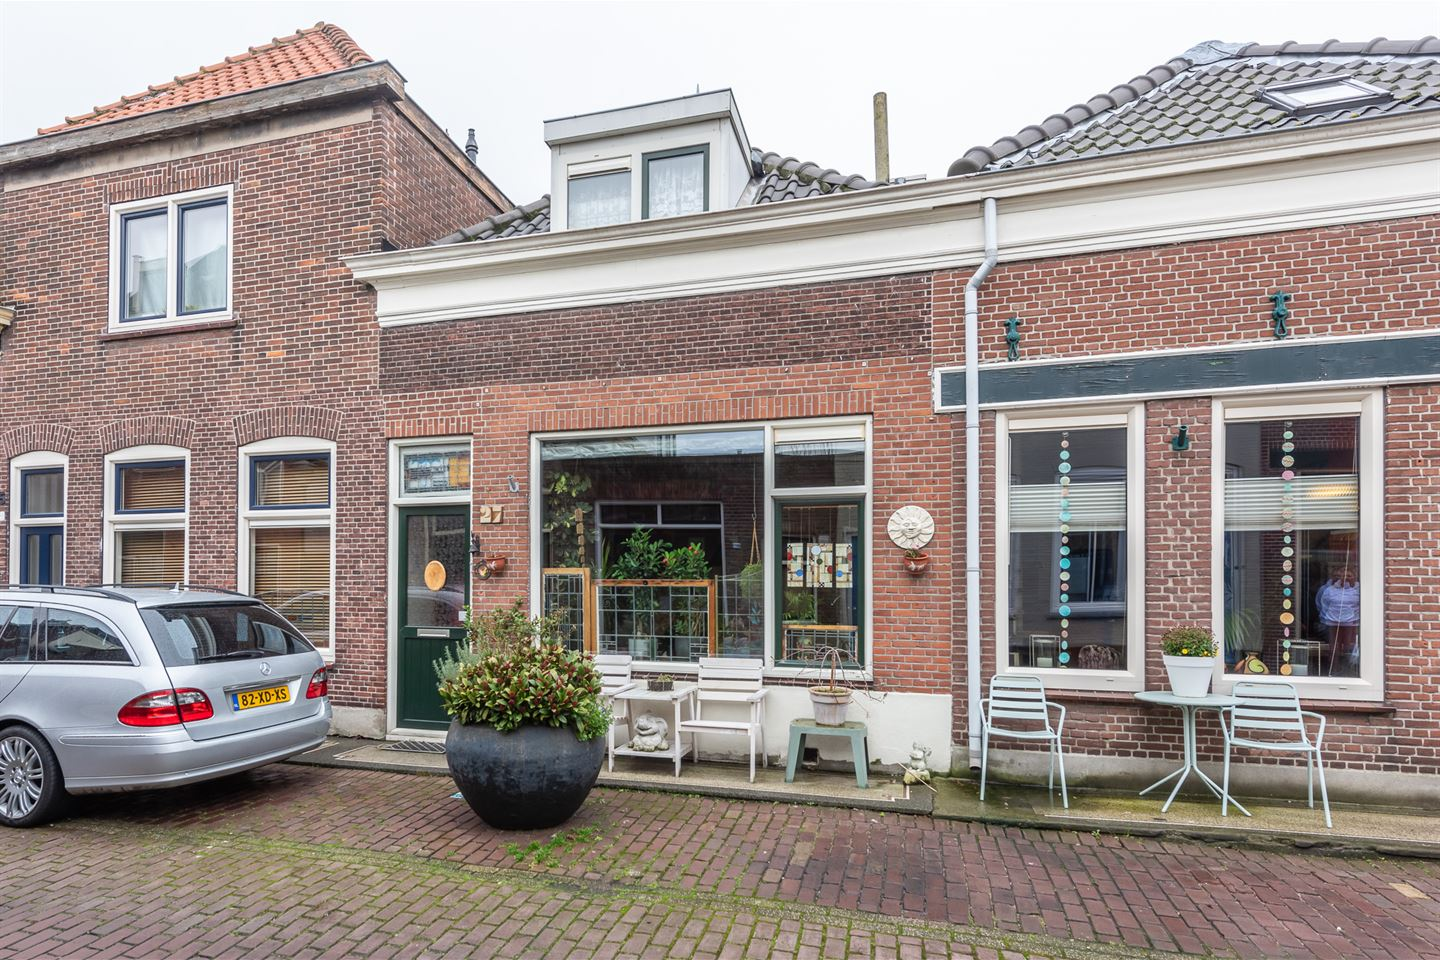 View photo 1 of Willem Beukelszoonstraat 27